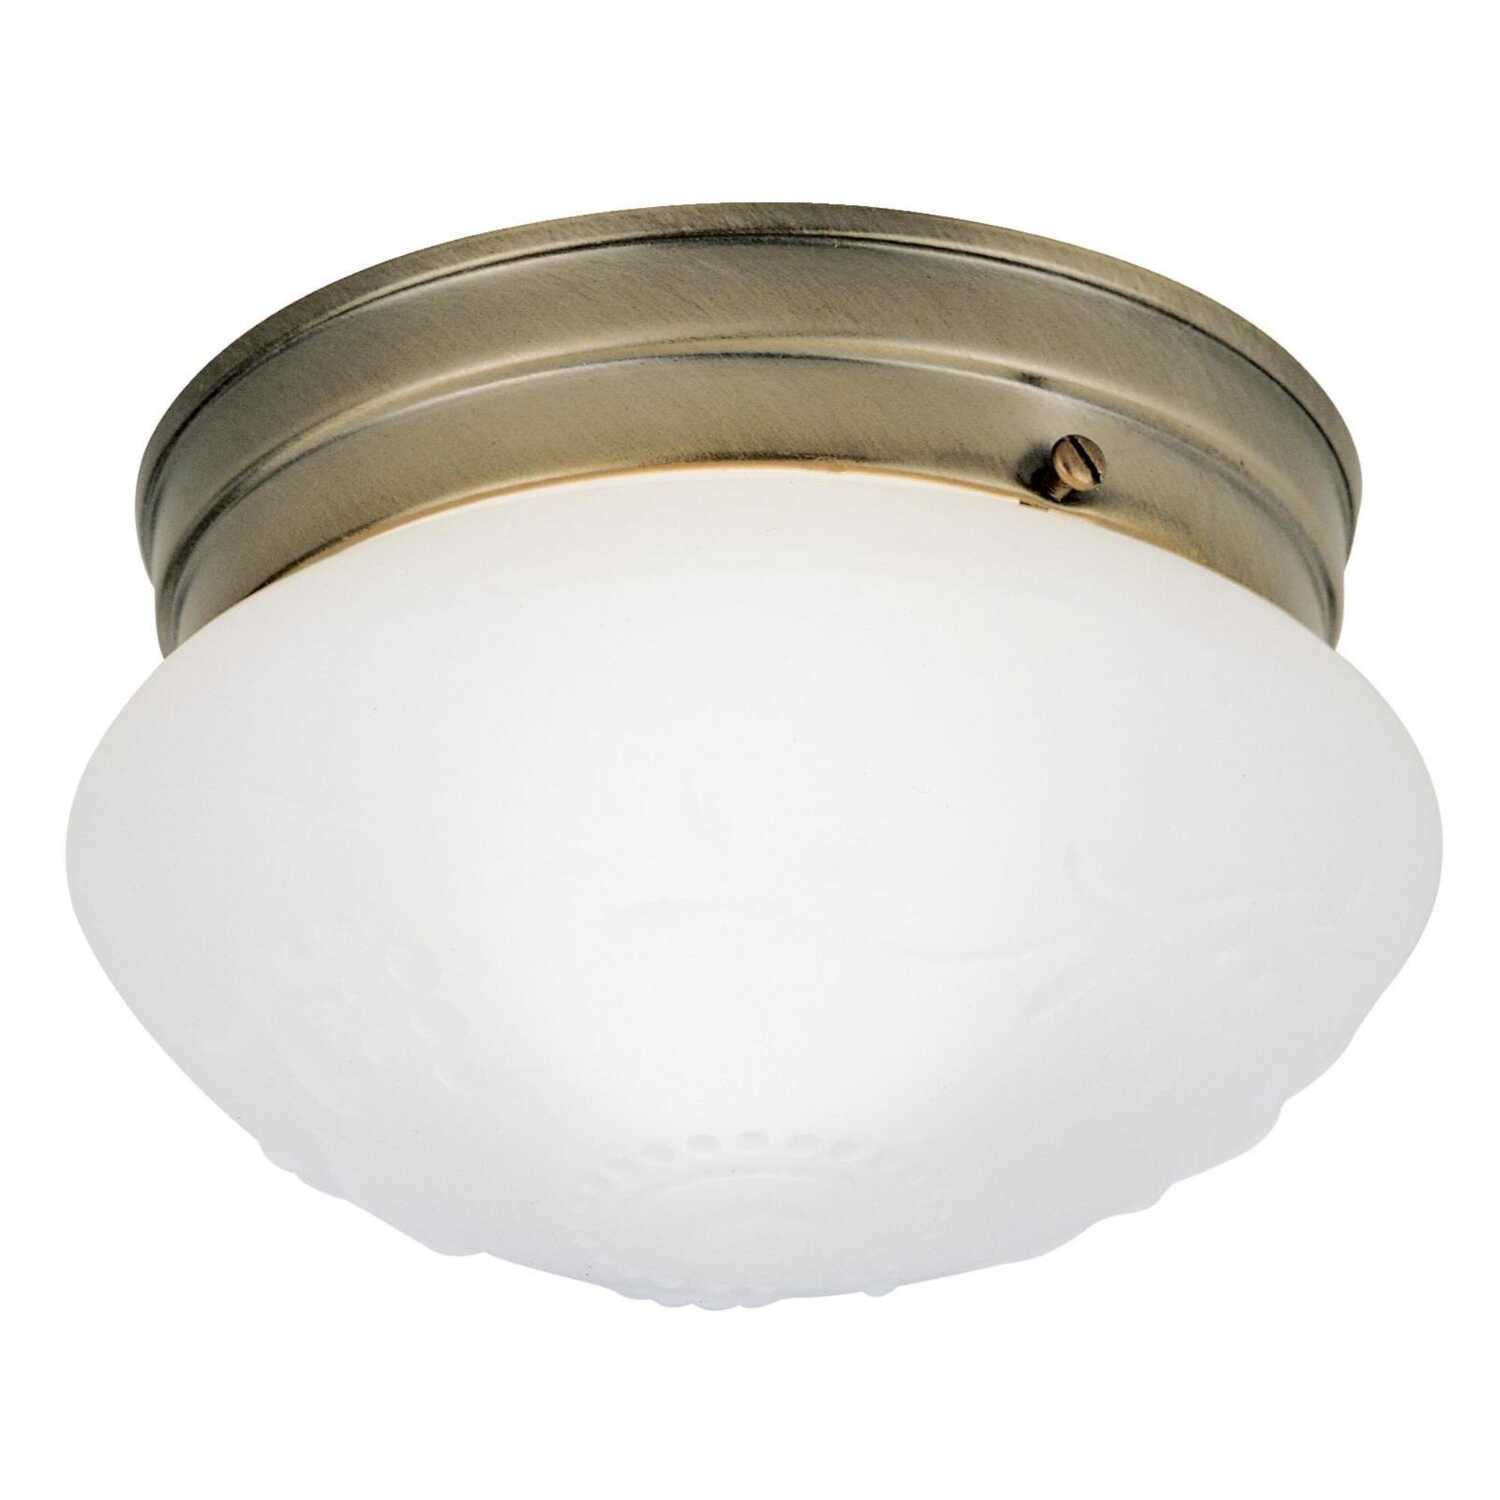 Westinghouse  4-1/2 in. H x 7.5 in. L x 7-1/2 in. W Ceiling Light